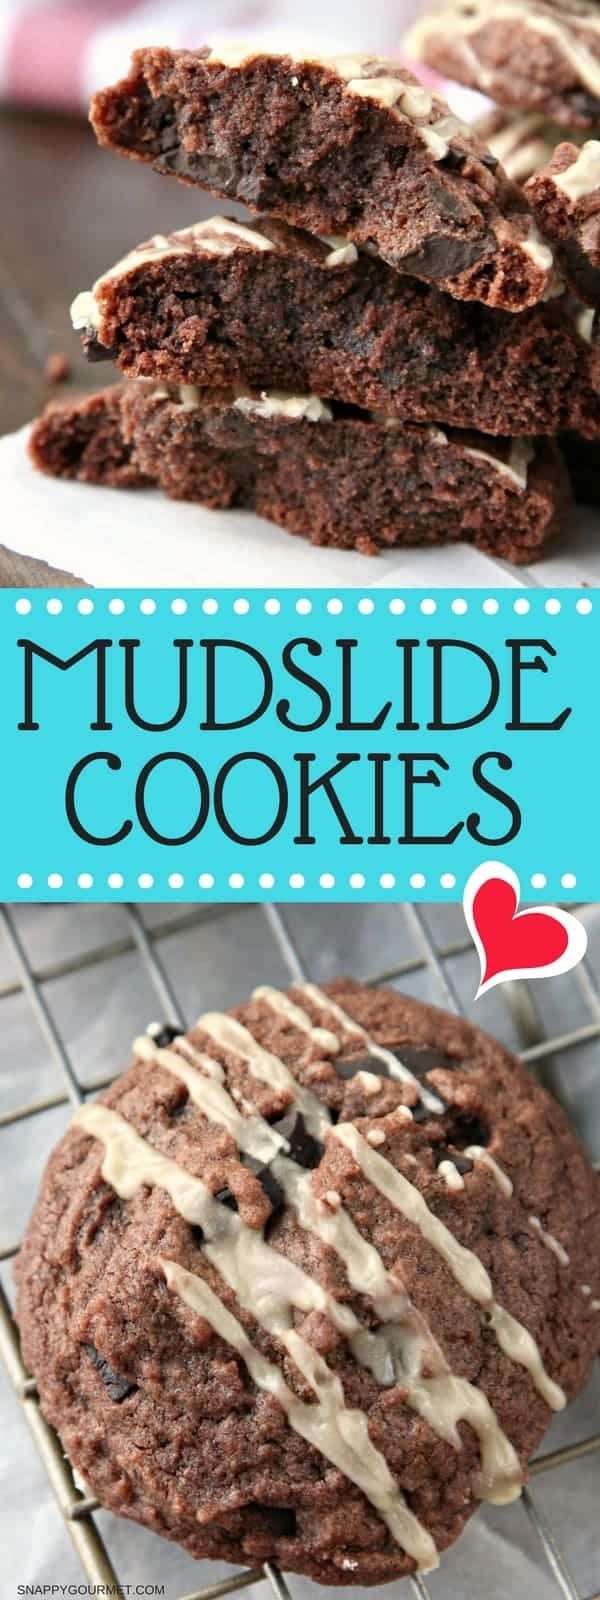 Mudslide Cookies Recipe - easy brownie cookie with Kahlua and Baileys Irish Cream just like a Mudslide Cocktail! #Mudslide #Cookie #Kahlua #SnappyGourmet